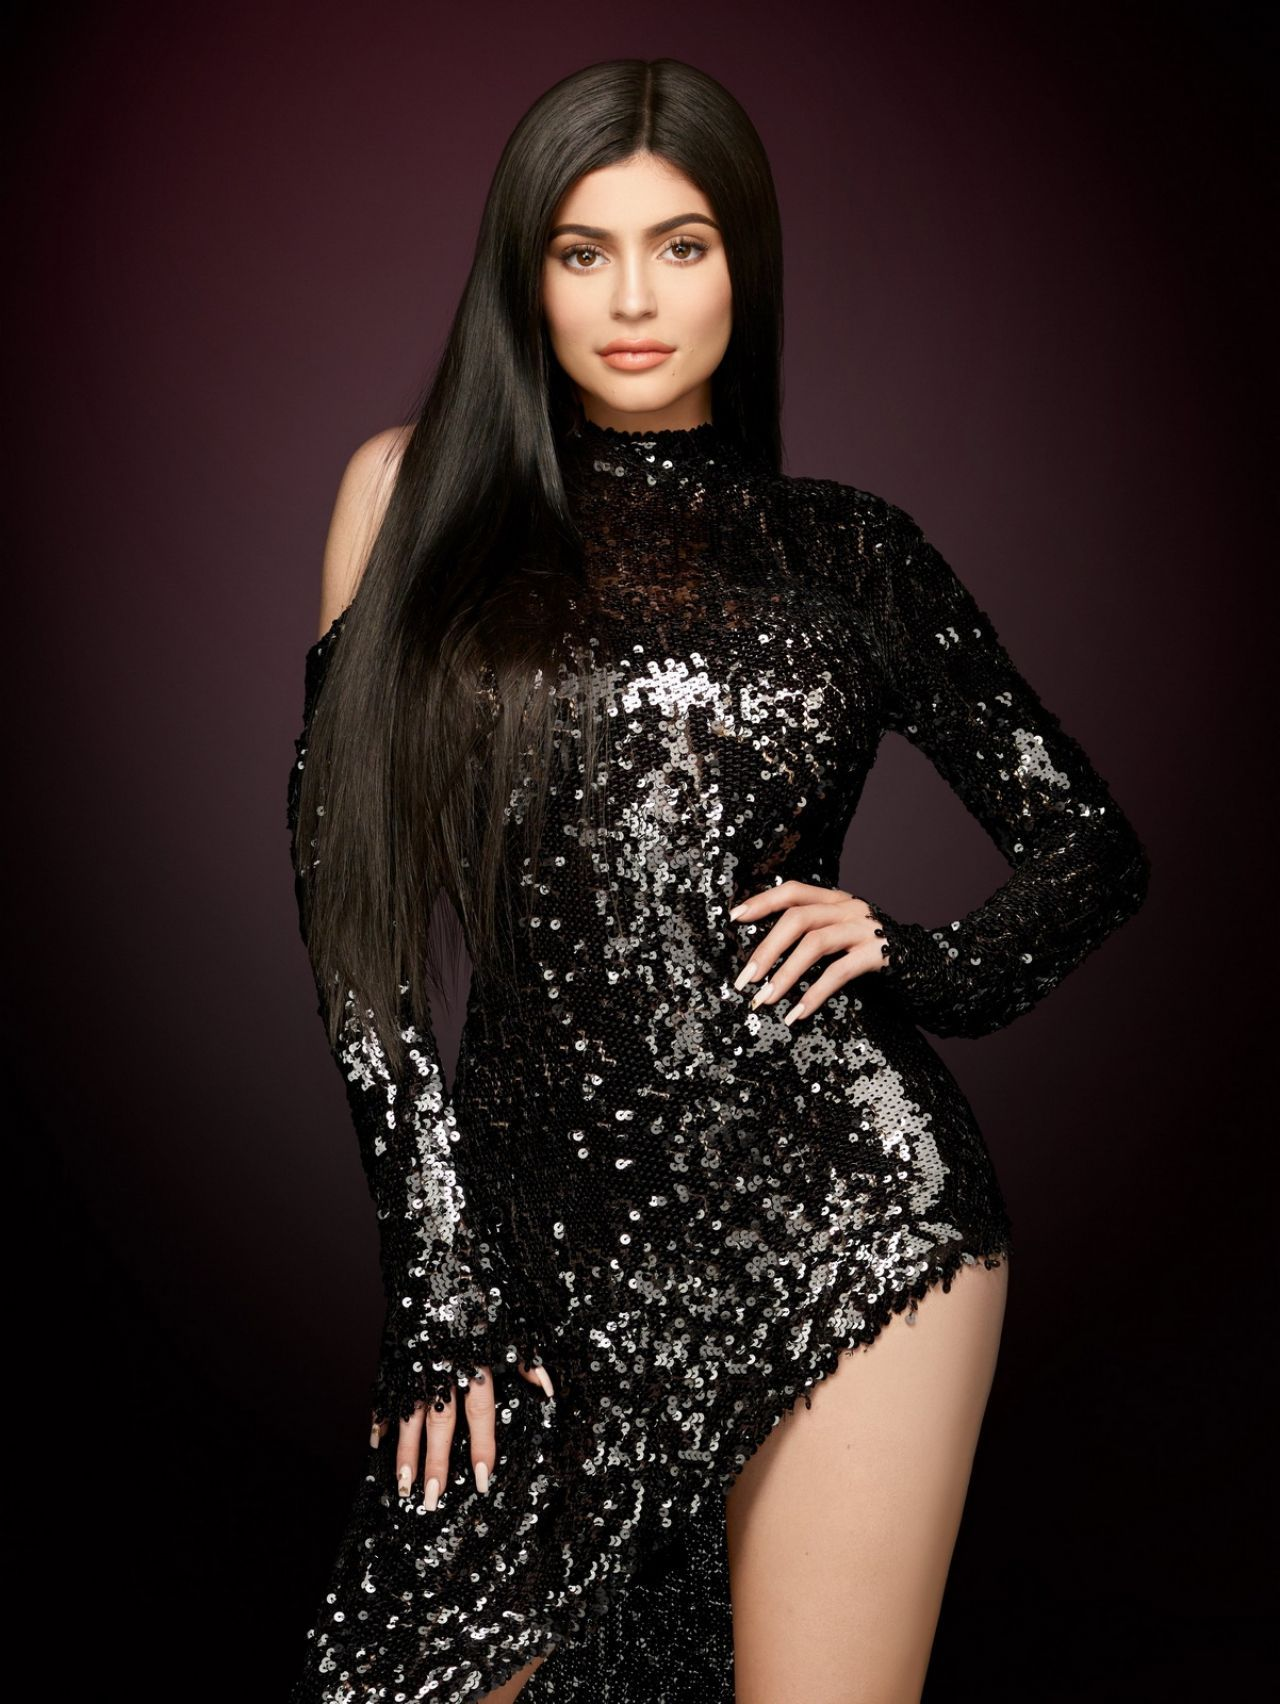 69b6317493f Kylie Jenner – Keeping Up With The Kardashians Season 14 Promo Photoshoot